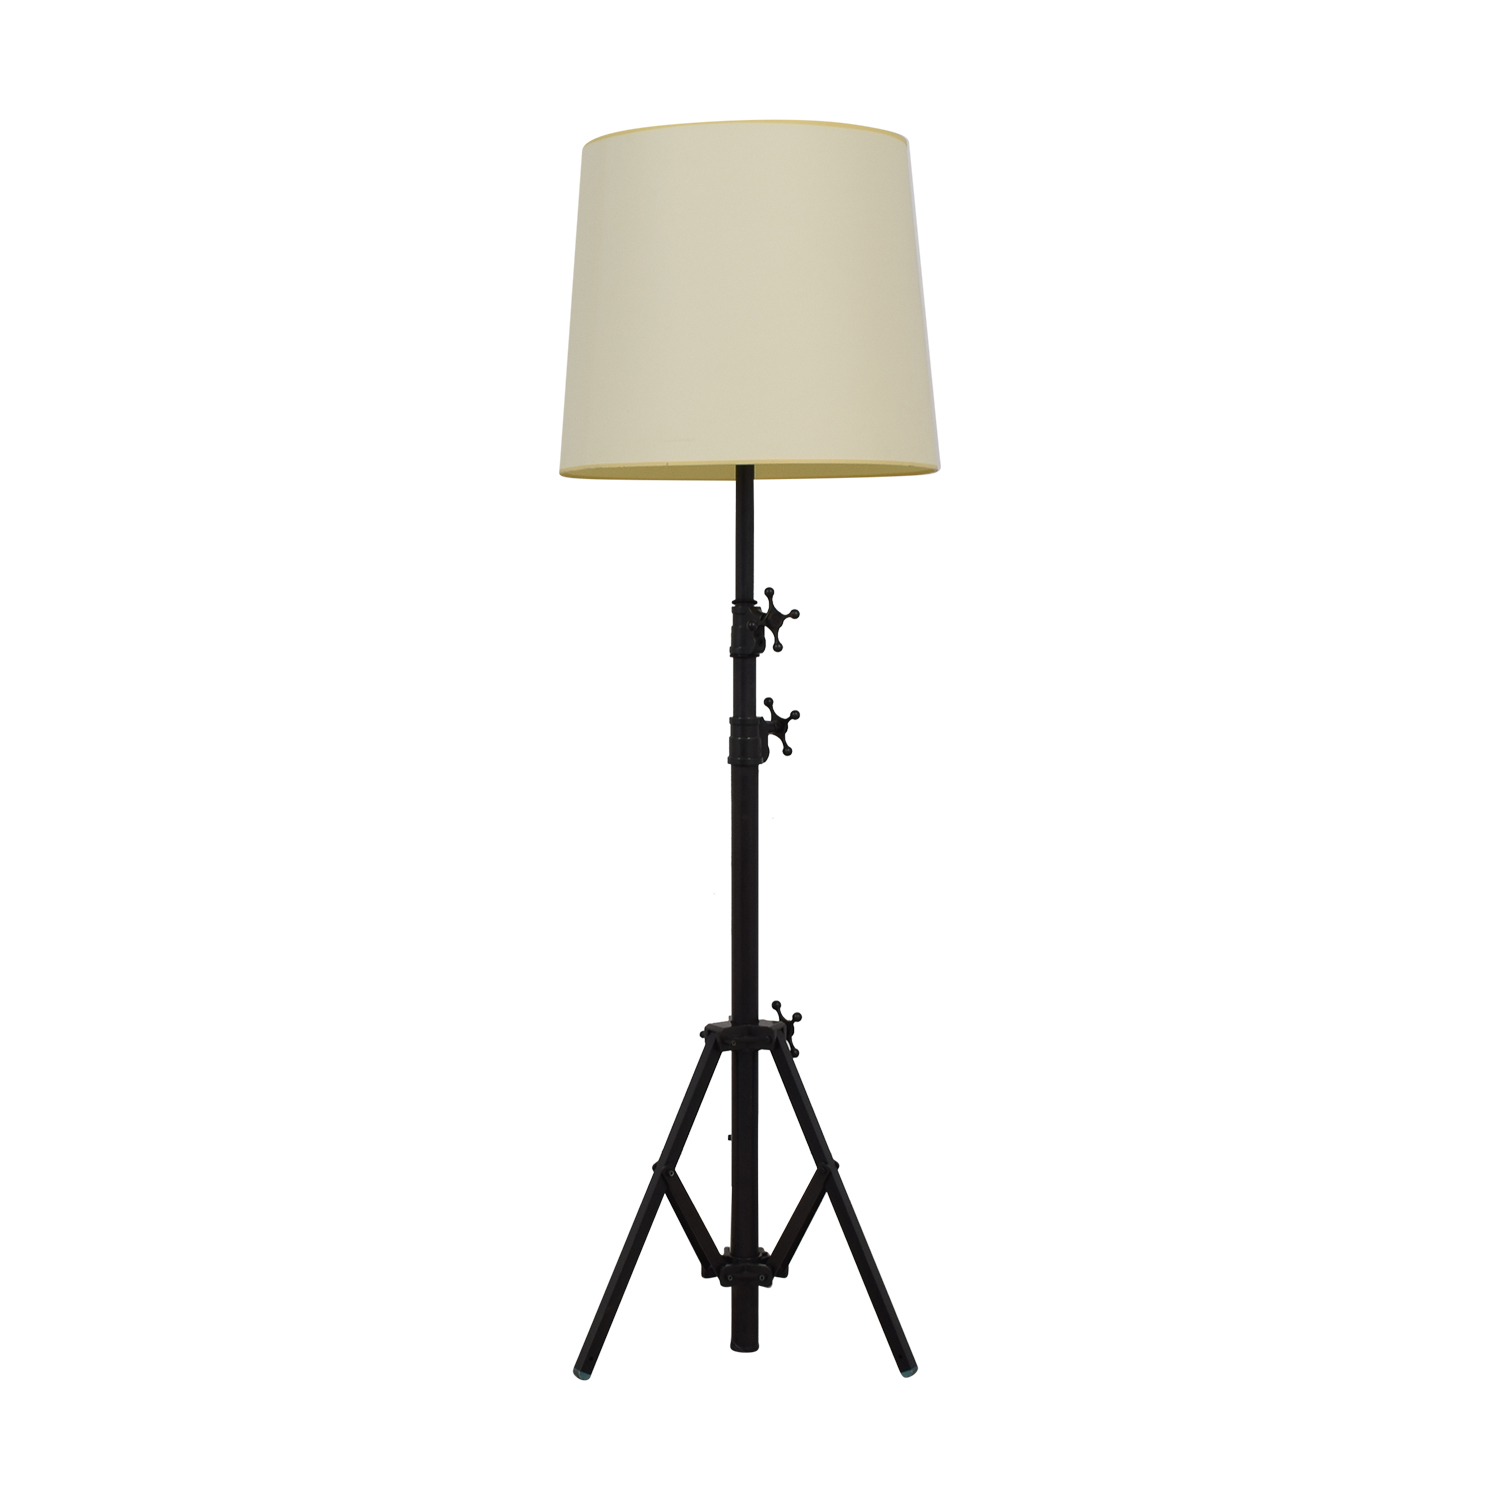 buy Lillian August Tripod Floor Lamp Lillian August Lamps